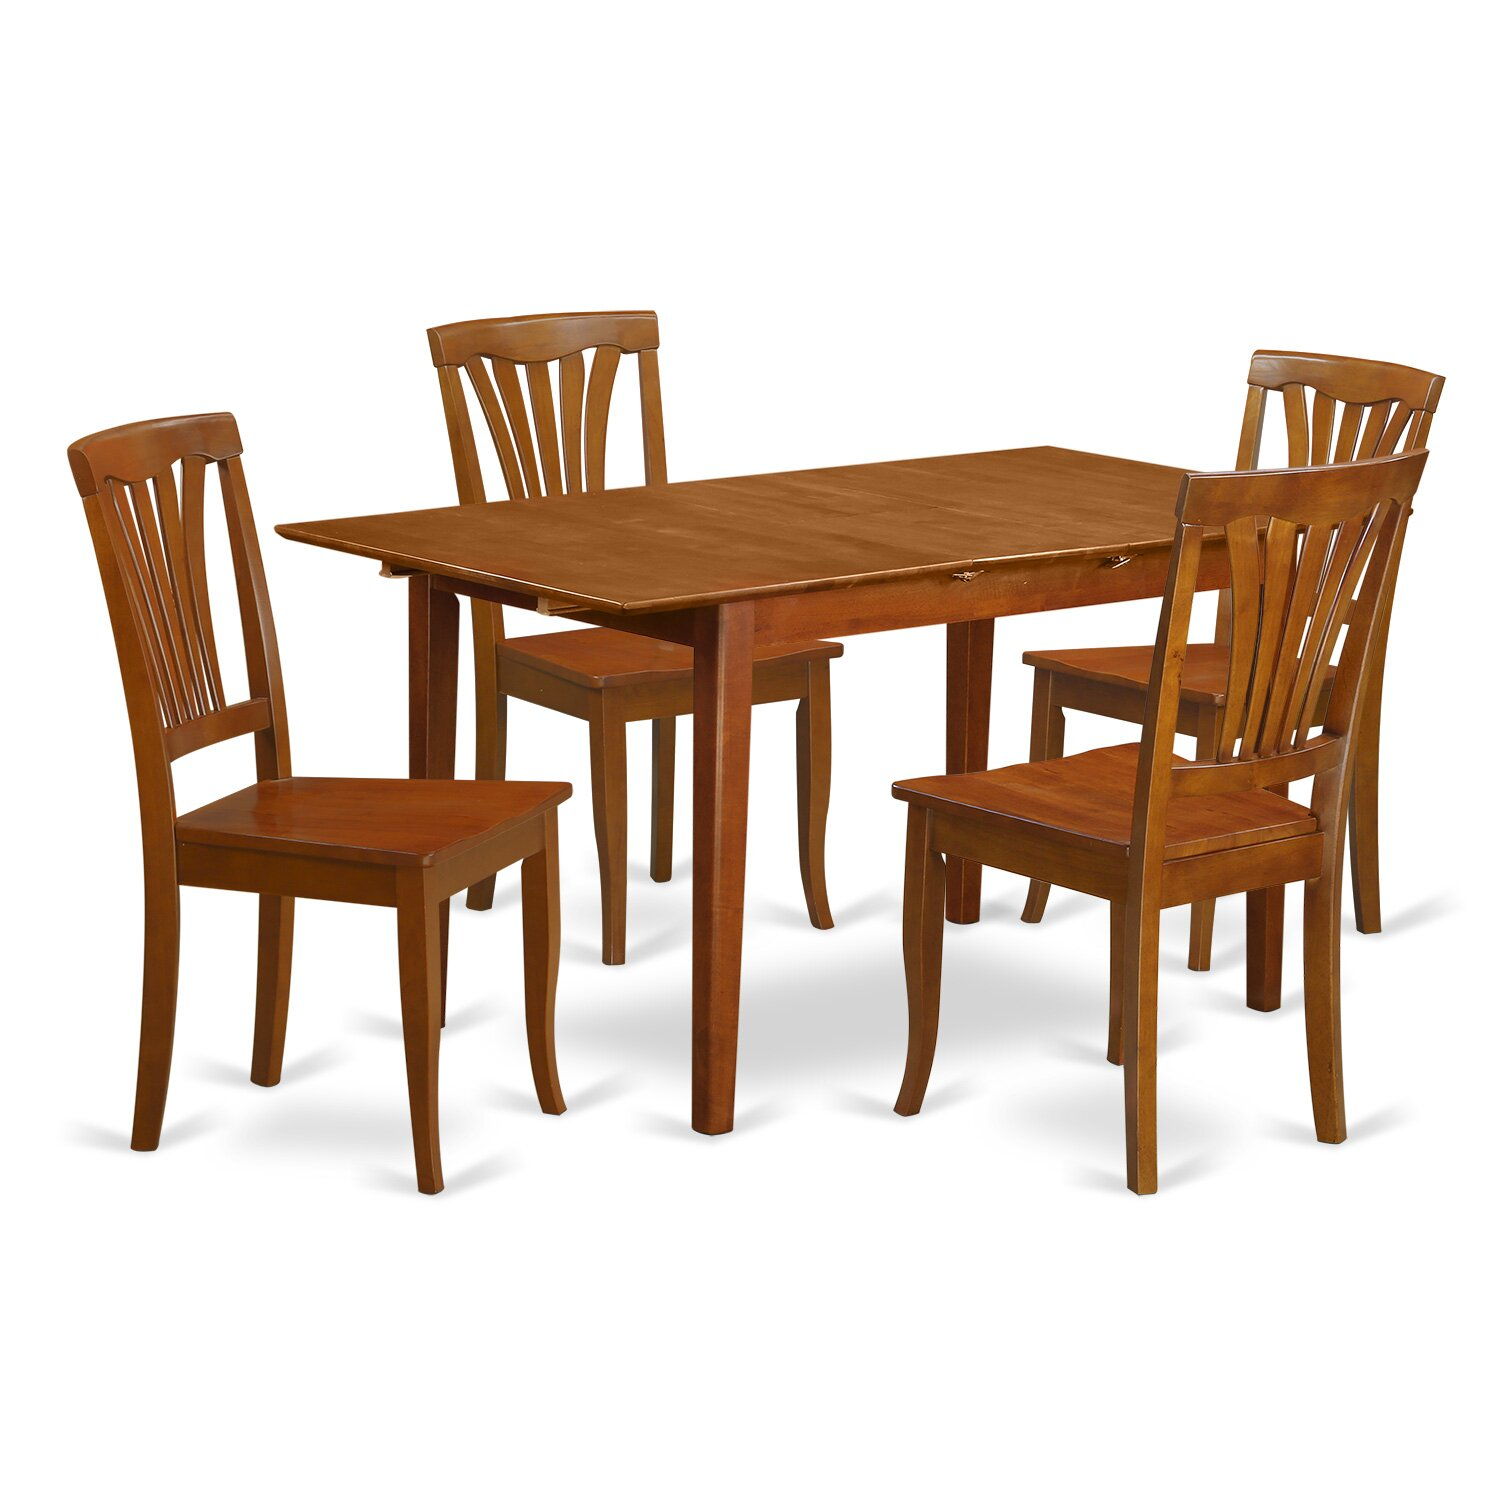 Wooden Importers 3 Piece Dining Set Reviews: Wooden Importers Picasso 5 Piece Dining Set & Reviews